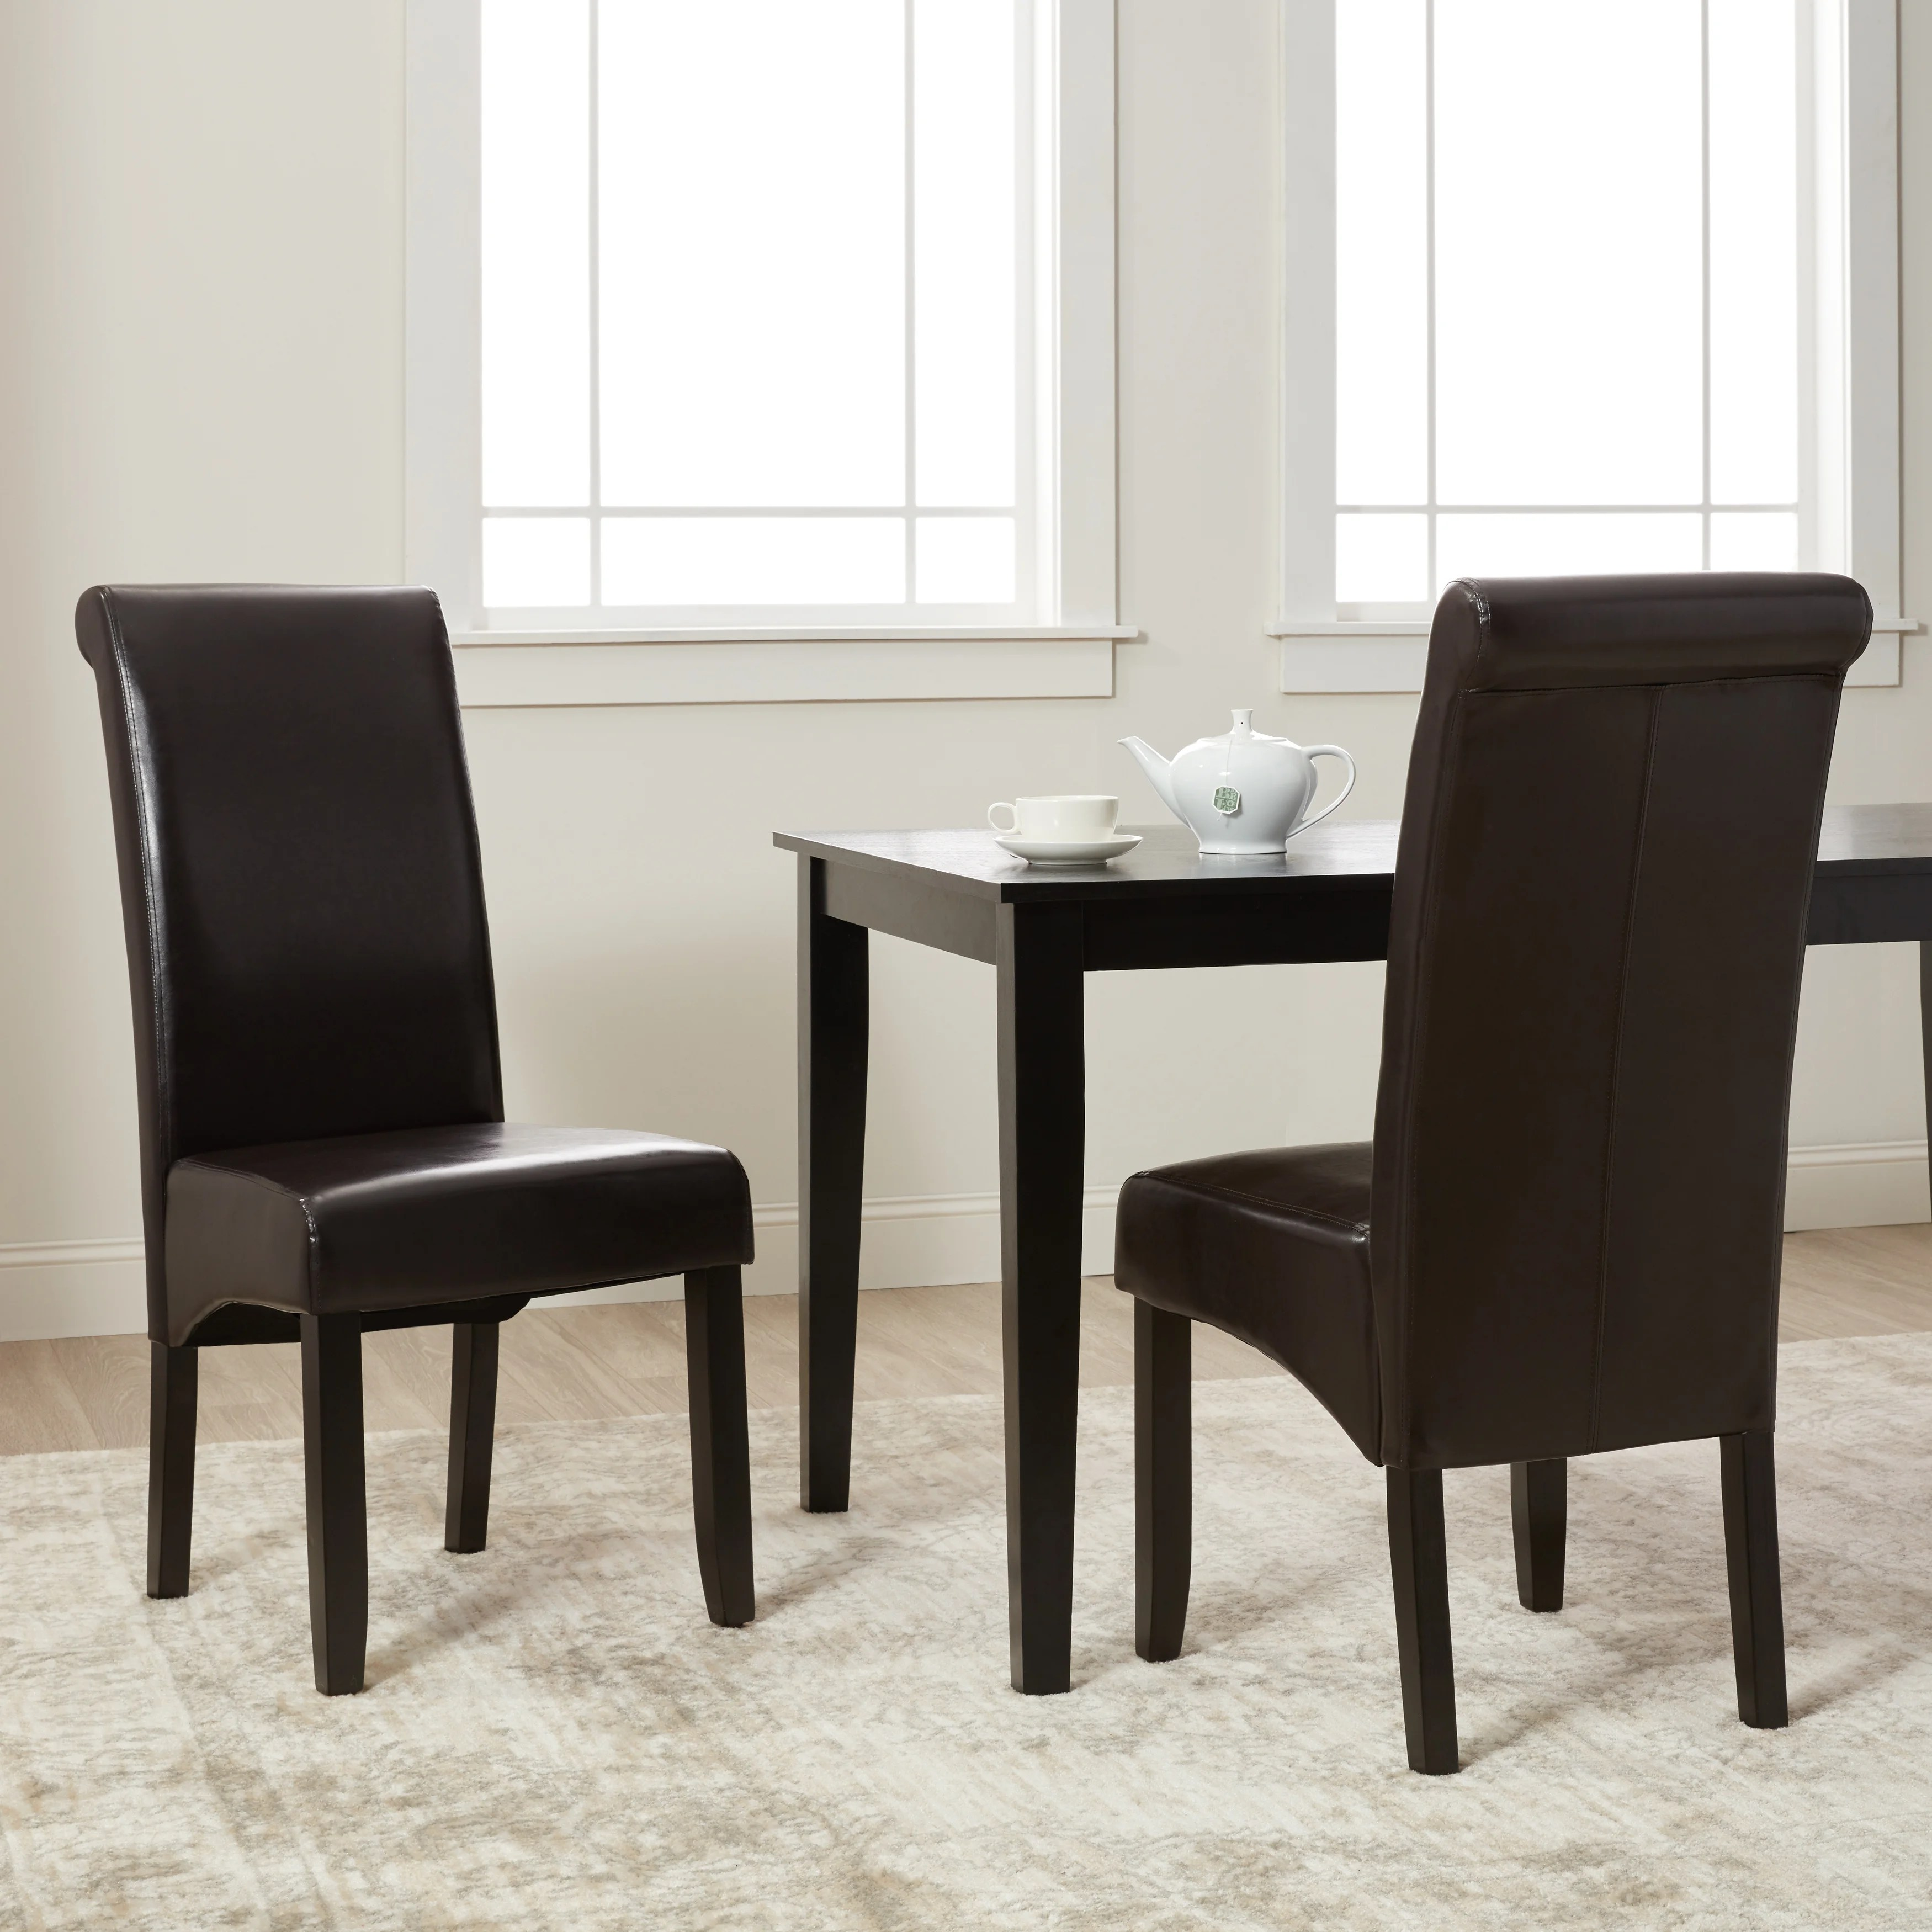 Buy Leather Kitchen Dining Room Chairs Online At Overstock